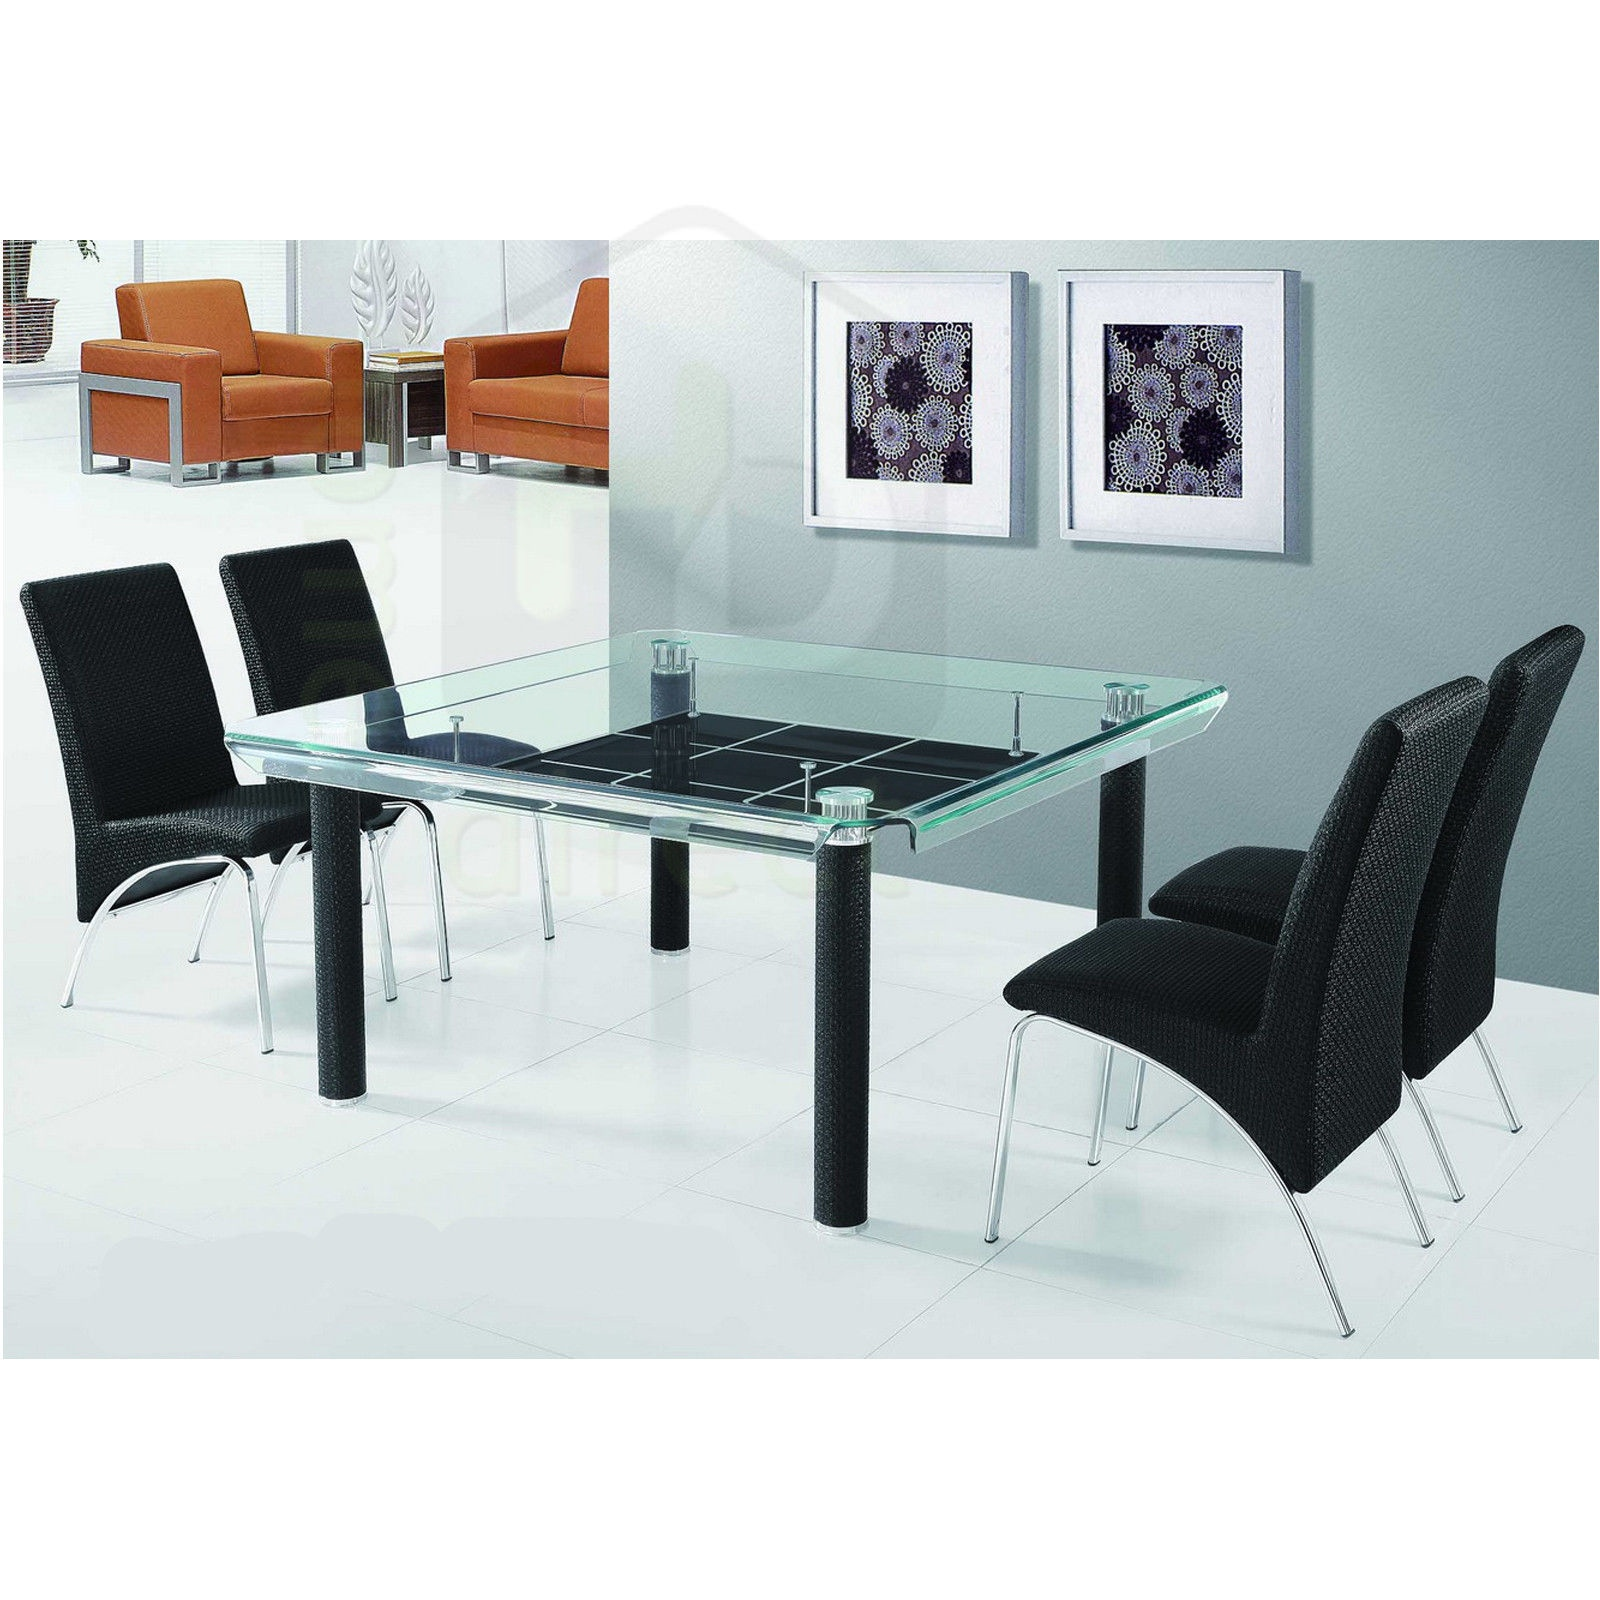 Www Modern Furniture: 150cm 1500mm X 1500mm MODERN SQUARE GLASS DINING TABLE W